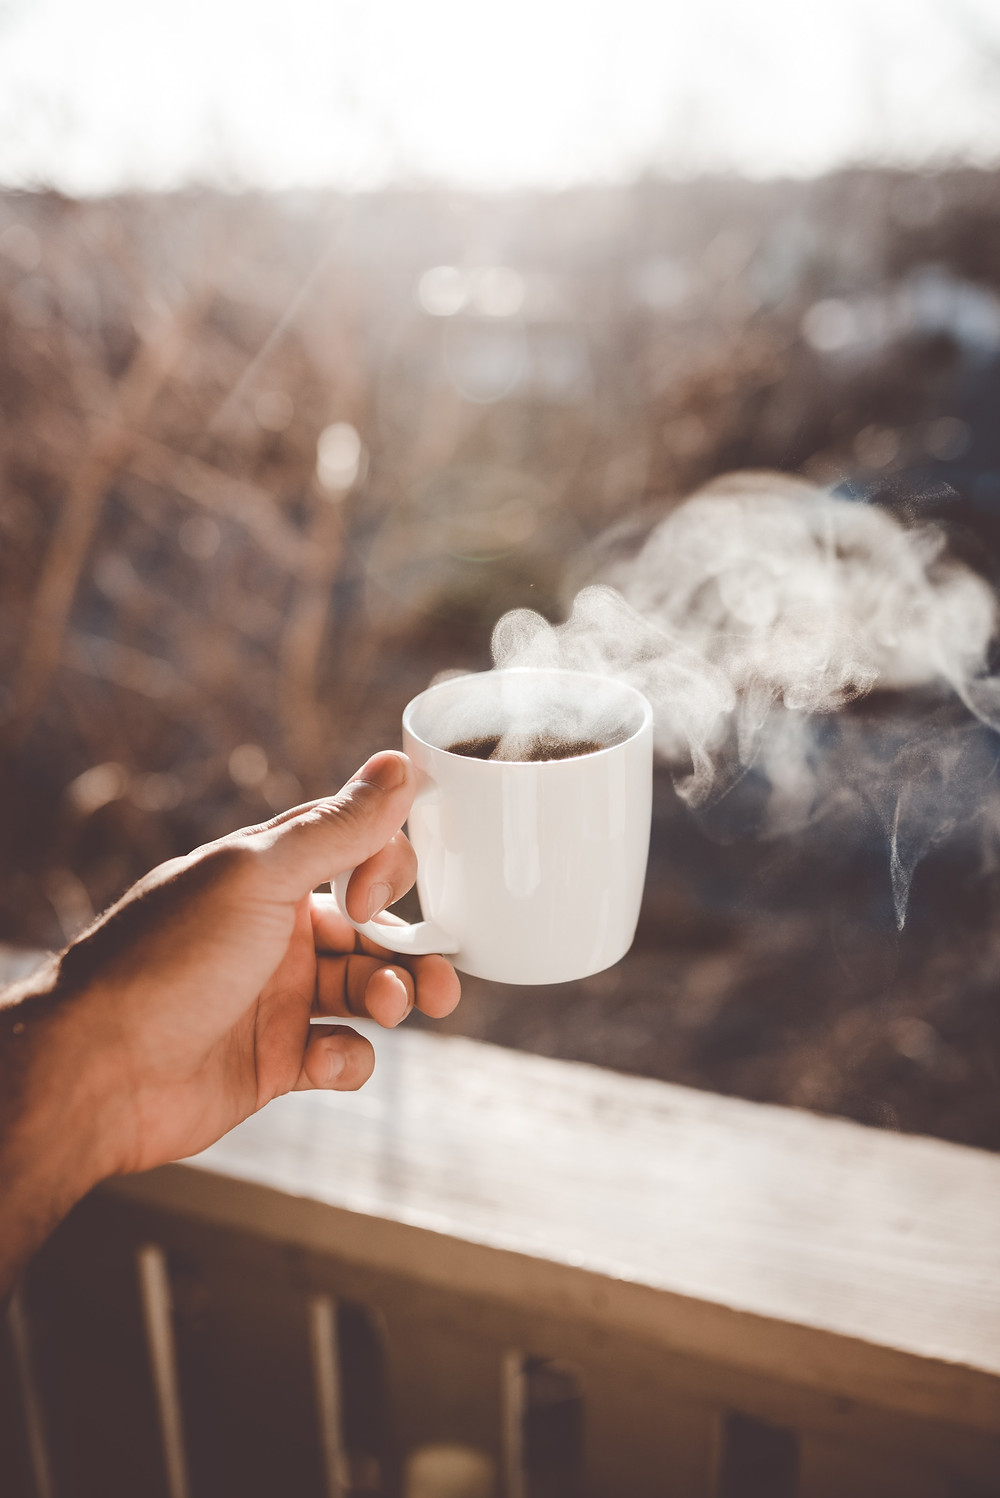 Hand holding a white mug with steaming coffee in it that you can drink before noon to not affect your sleep at night. We help you learn better sleep habits through anxiety counseling in Denver CO and Englewood CO 80209 and 80210